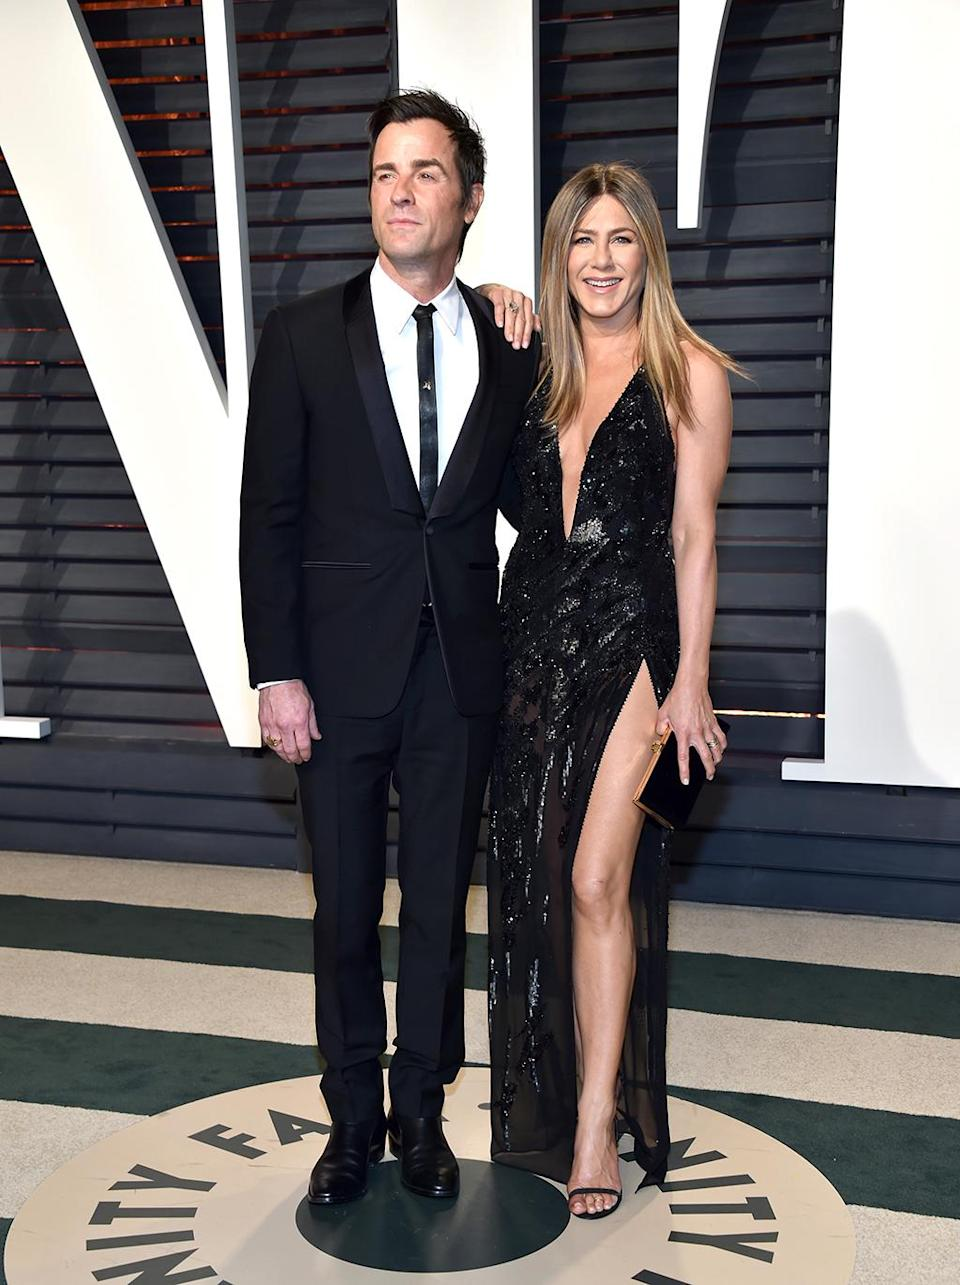 <p>Justin Theroux and Jennifer Aniston were ready to party! The couple wore black — of course — but fancier ensembles than usual as they arrived for the <i>Vanity Fair</i> fete. Just as predictably, the high leg slit on Aniston's dress quickly had people comparing her to Angelina Jolie. (Photo by Pascal Le Segretain/Getty Images) </p>